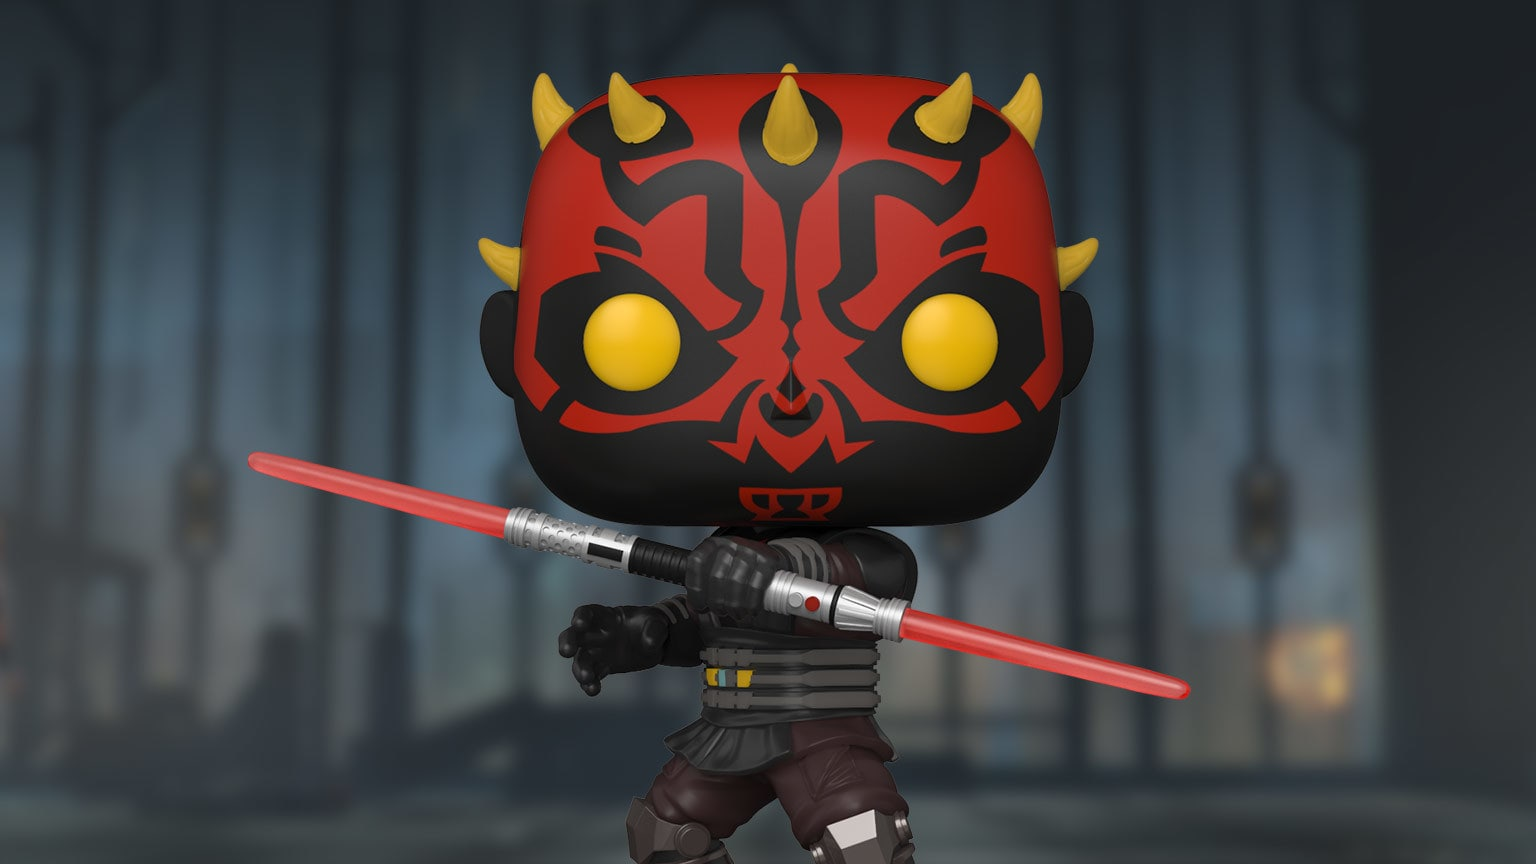 Ahsoka Tano and Maul Return with New Funko Pop! Bobbleheads — Exclusive Reveal